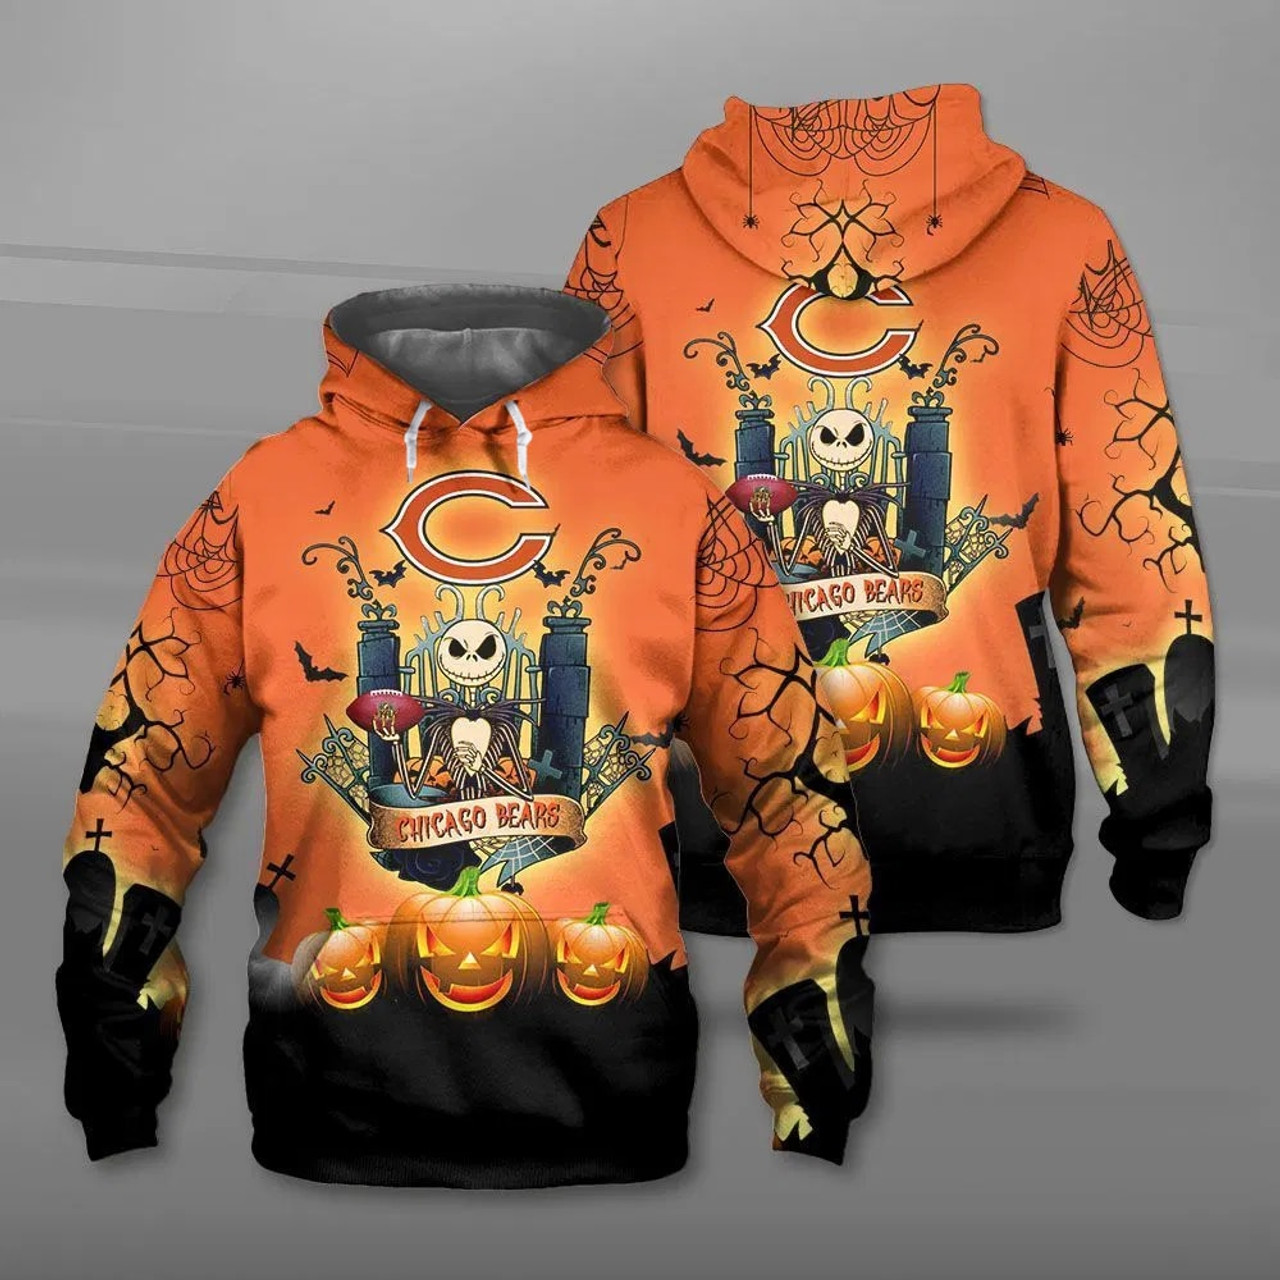 **(OFFICIAL-N.F.L.CHICAGO-BEARS-PULLOVER-HOODIES & CLASSIC-JACK-SKELLINGTON-ANIMATED-HORROR-CHARACTER/OFFICIAL-BEARS-TEAM-LOGOS & OFFICIAL-BEARS-TEAM-COLORS/ALL-OVER-CUSTOM-GRAPHIC-3D-PRINTED-DESIGN/TRENDY-WARM-PREMIUM-BEARS-PULLOVER-HOODIES)**